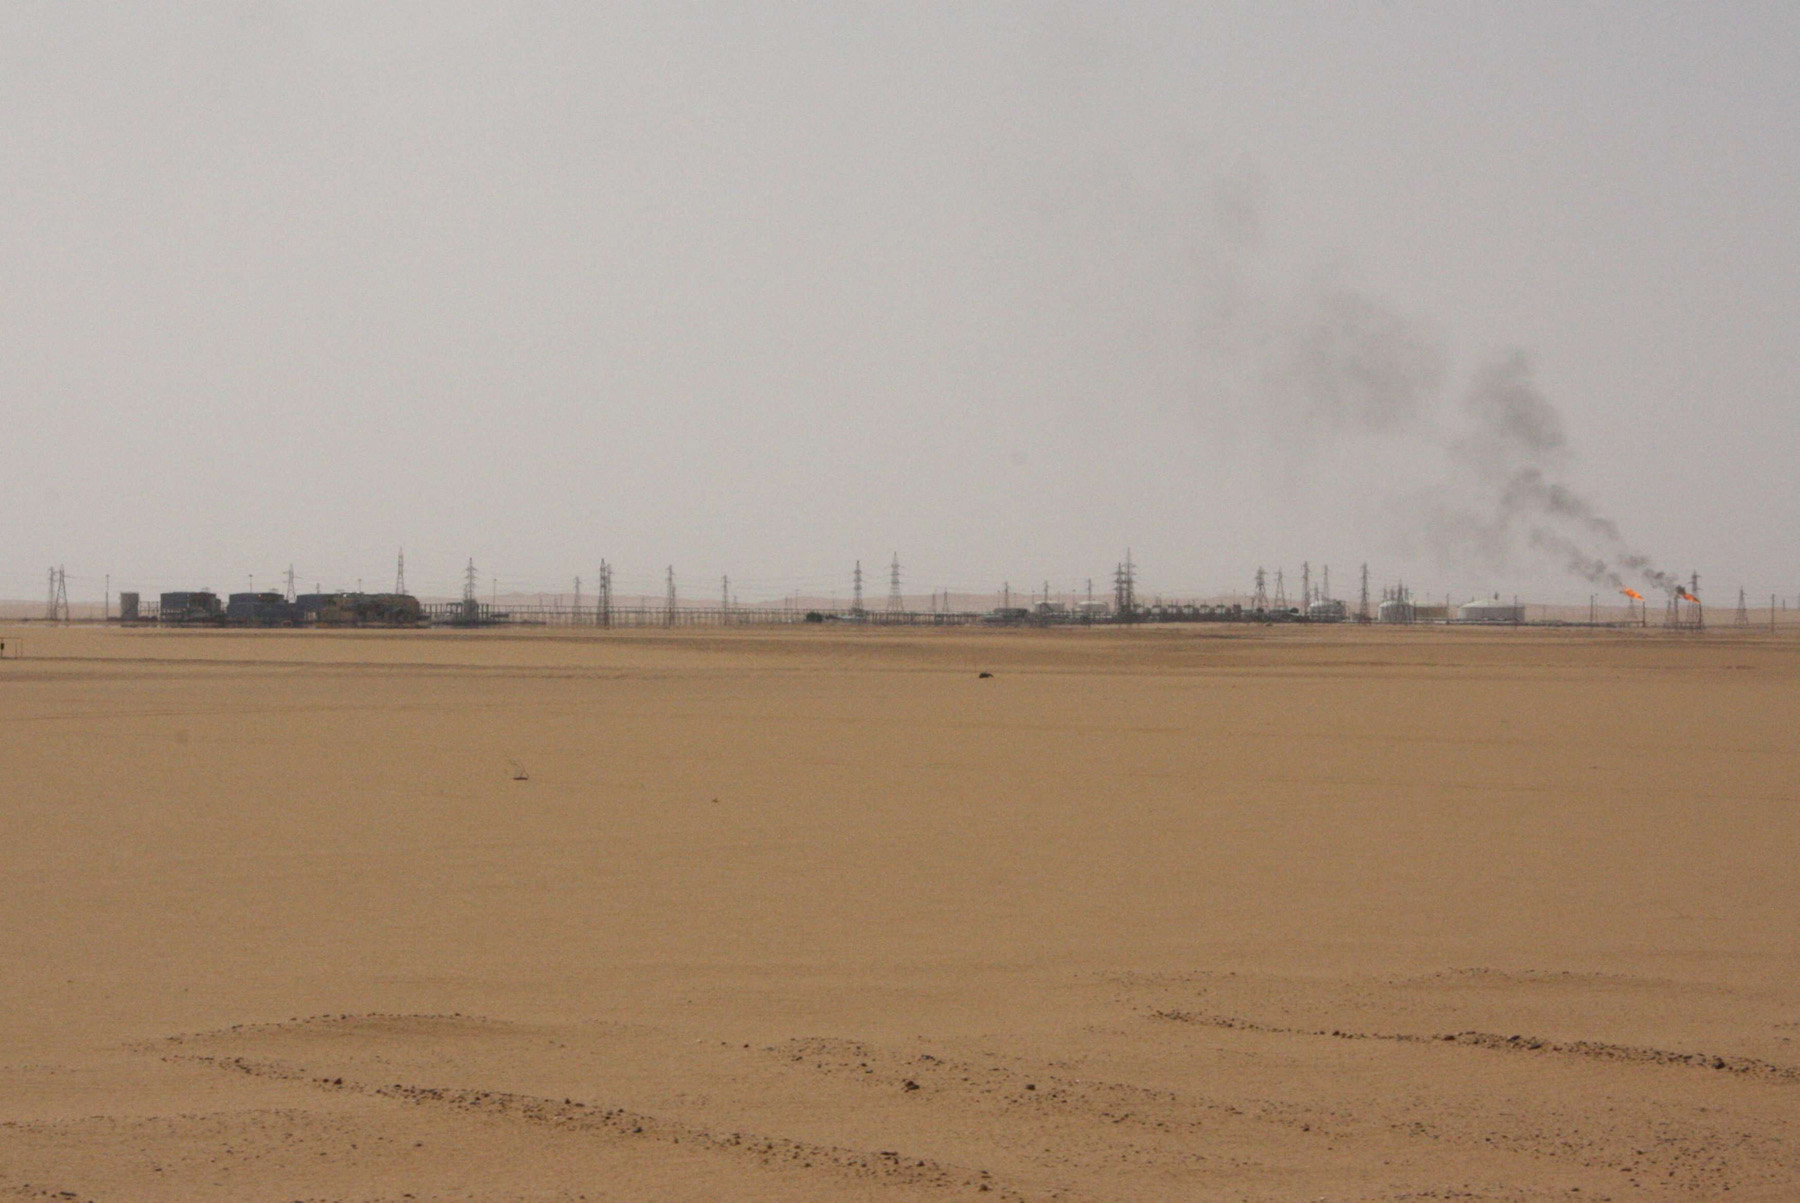 A view shows Sharara oil field near Ubari, Libya, July 6, 2017. (Reuters)